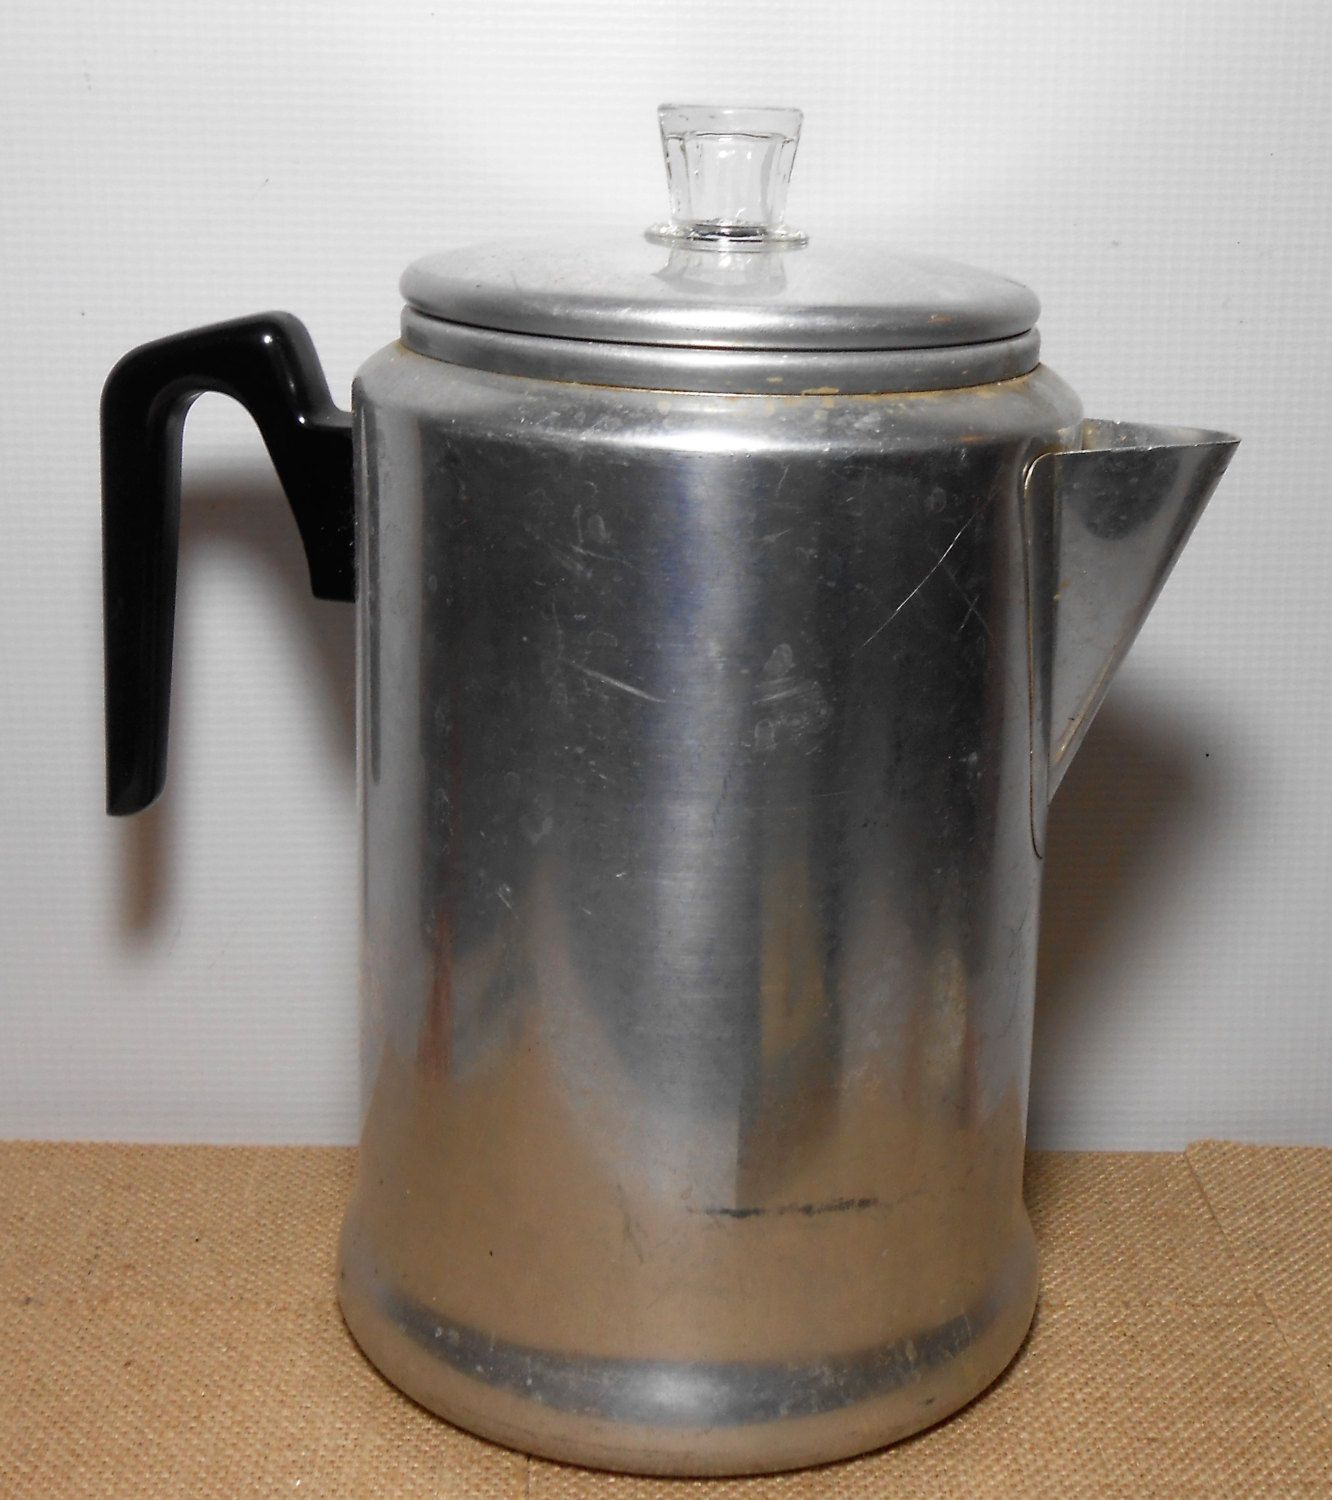 Vintage Coffee Pot Gentury Coffee Percolator Aluminum Ware